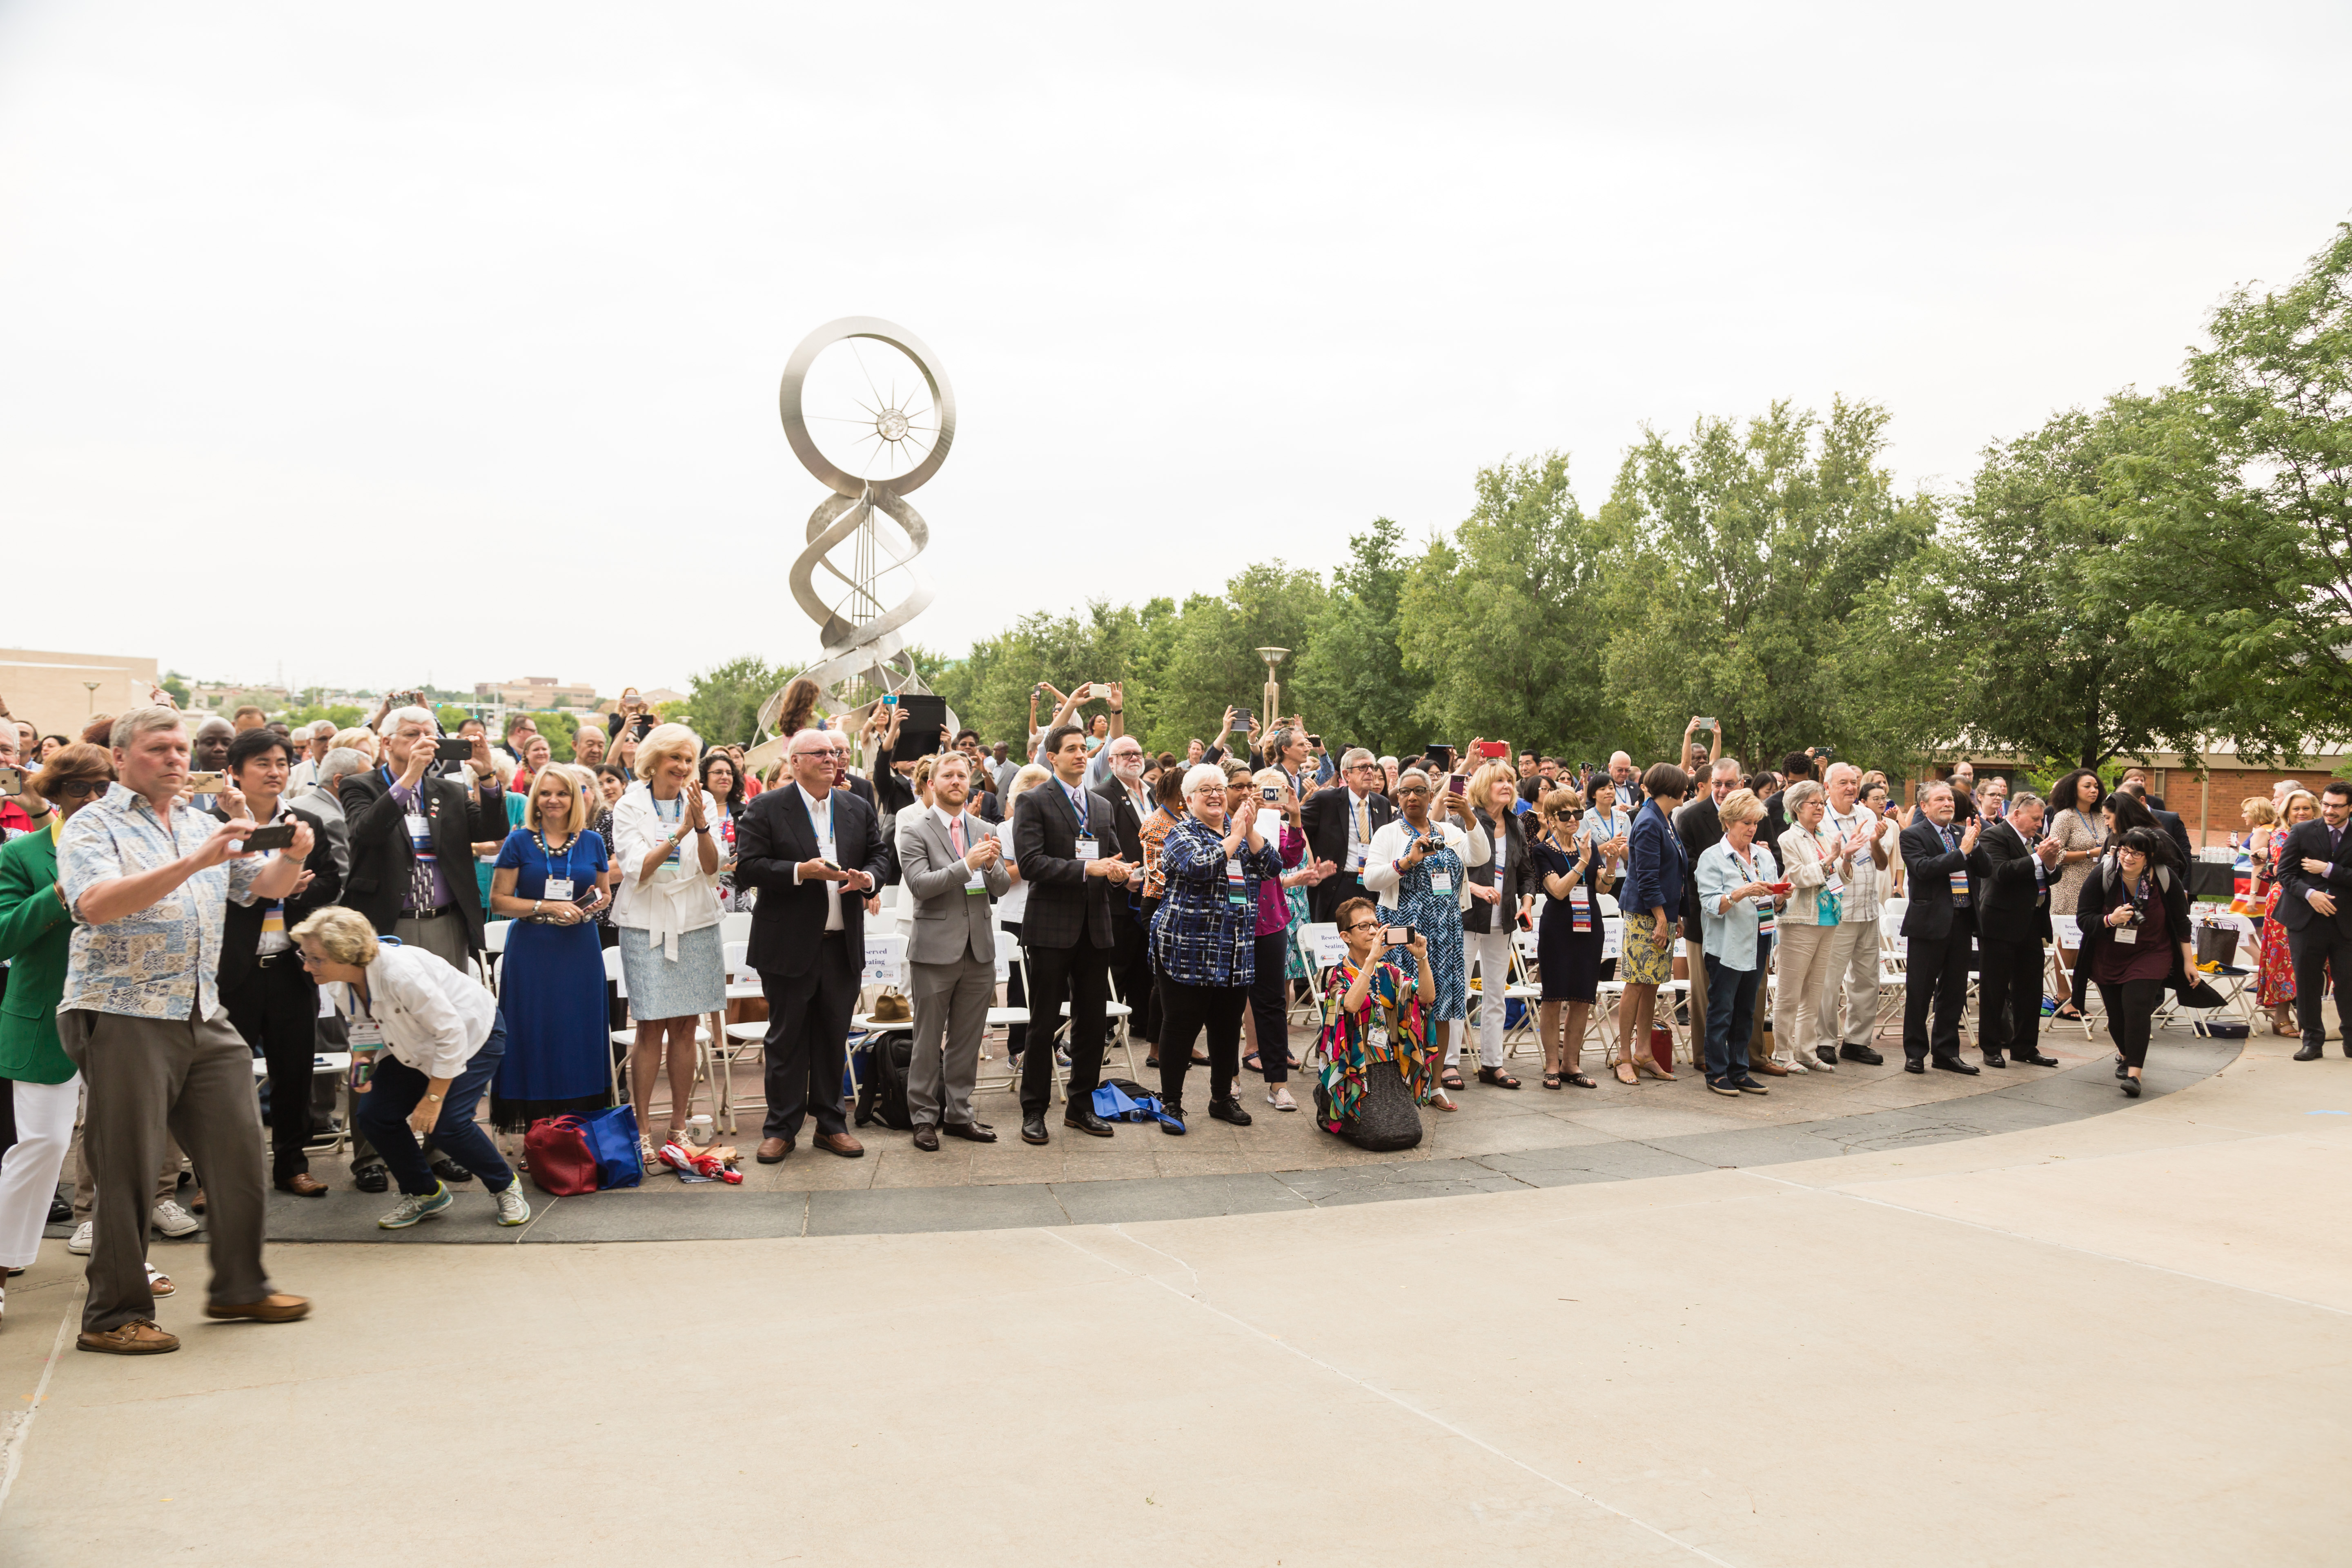 Attendees at the Opening Ceremony